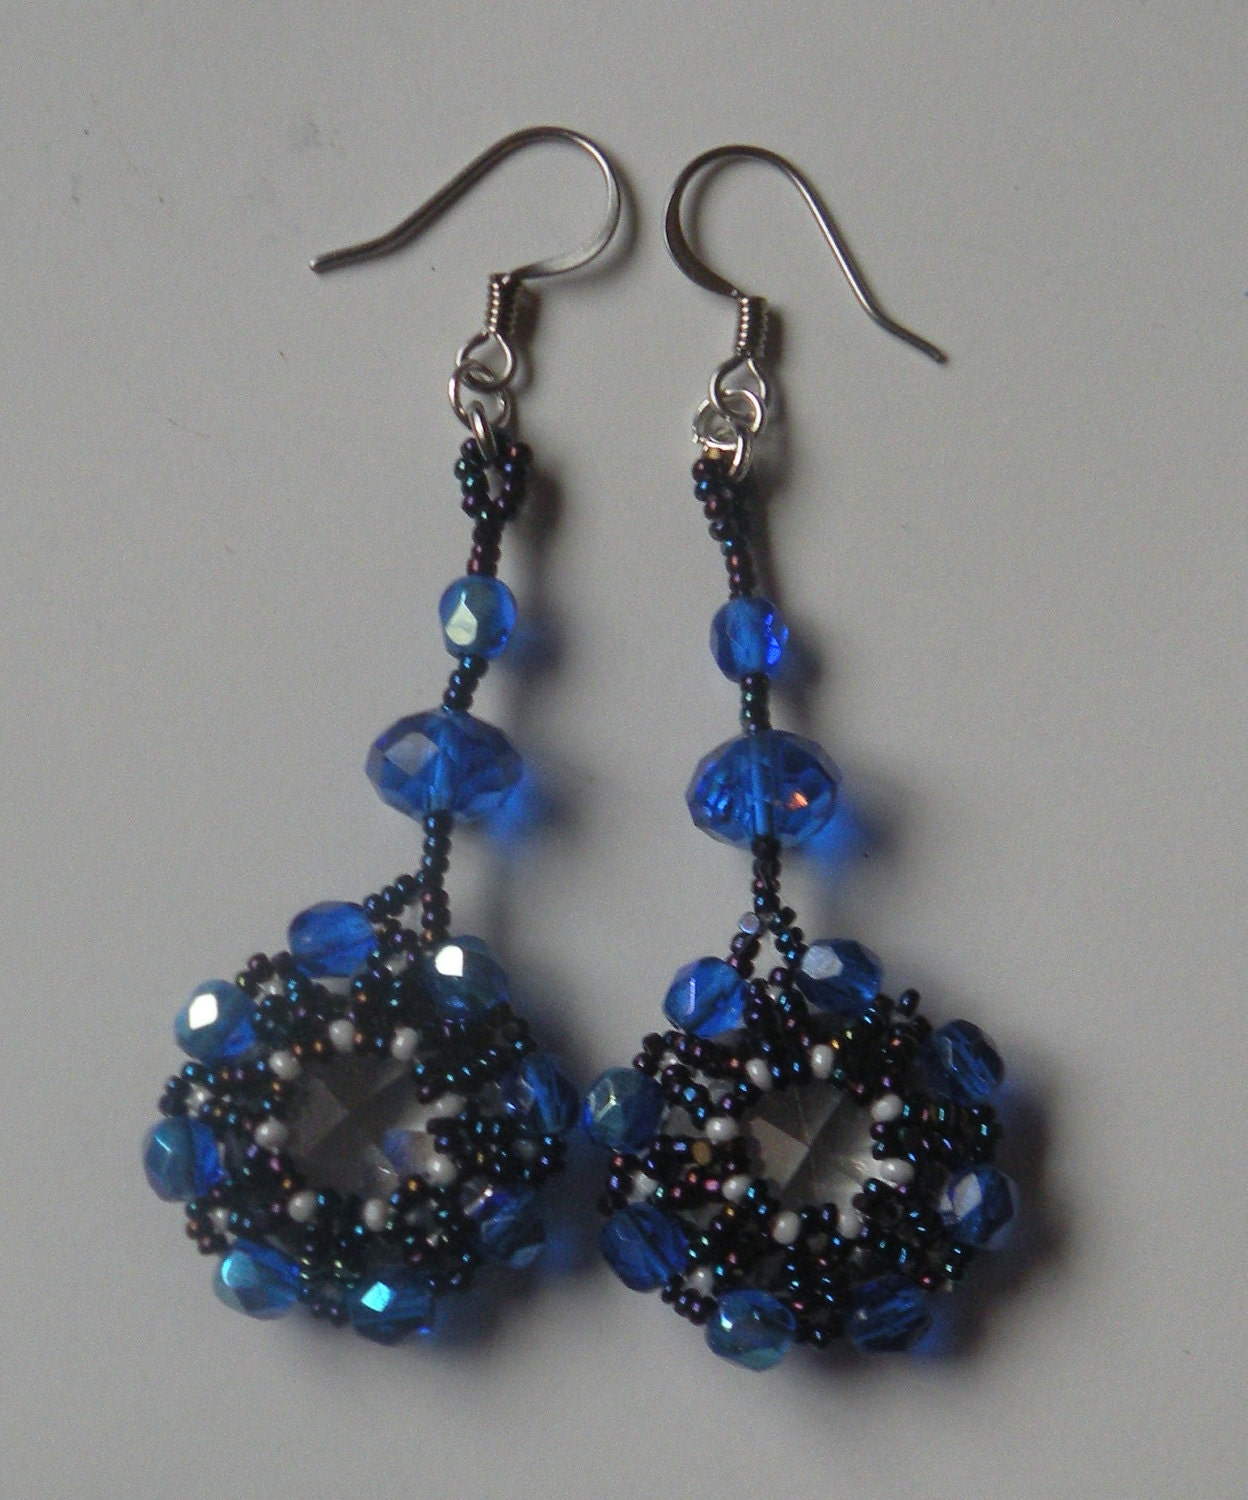 Blue Octagon Crystal Earrings with Rondelle Embellishment